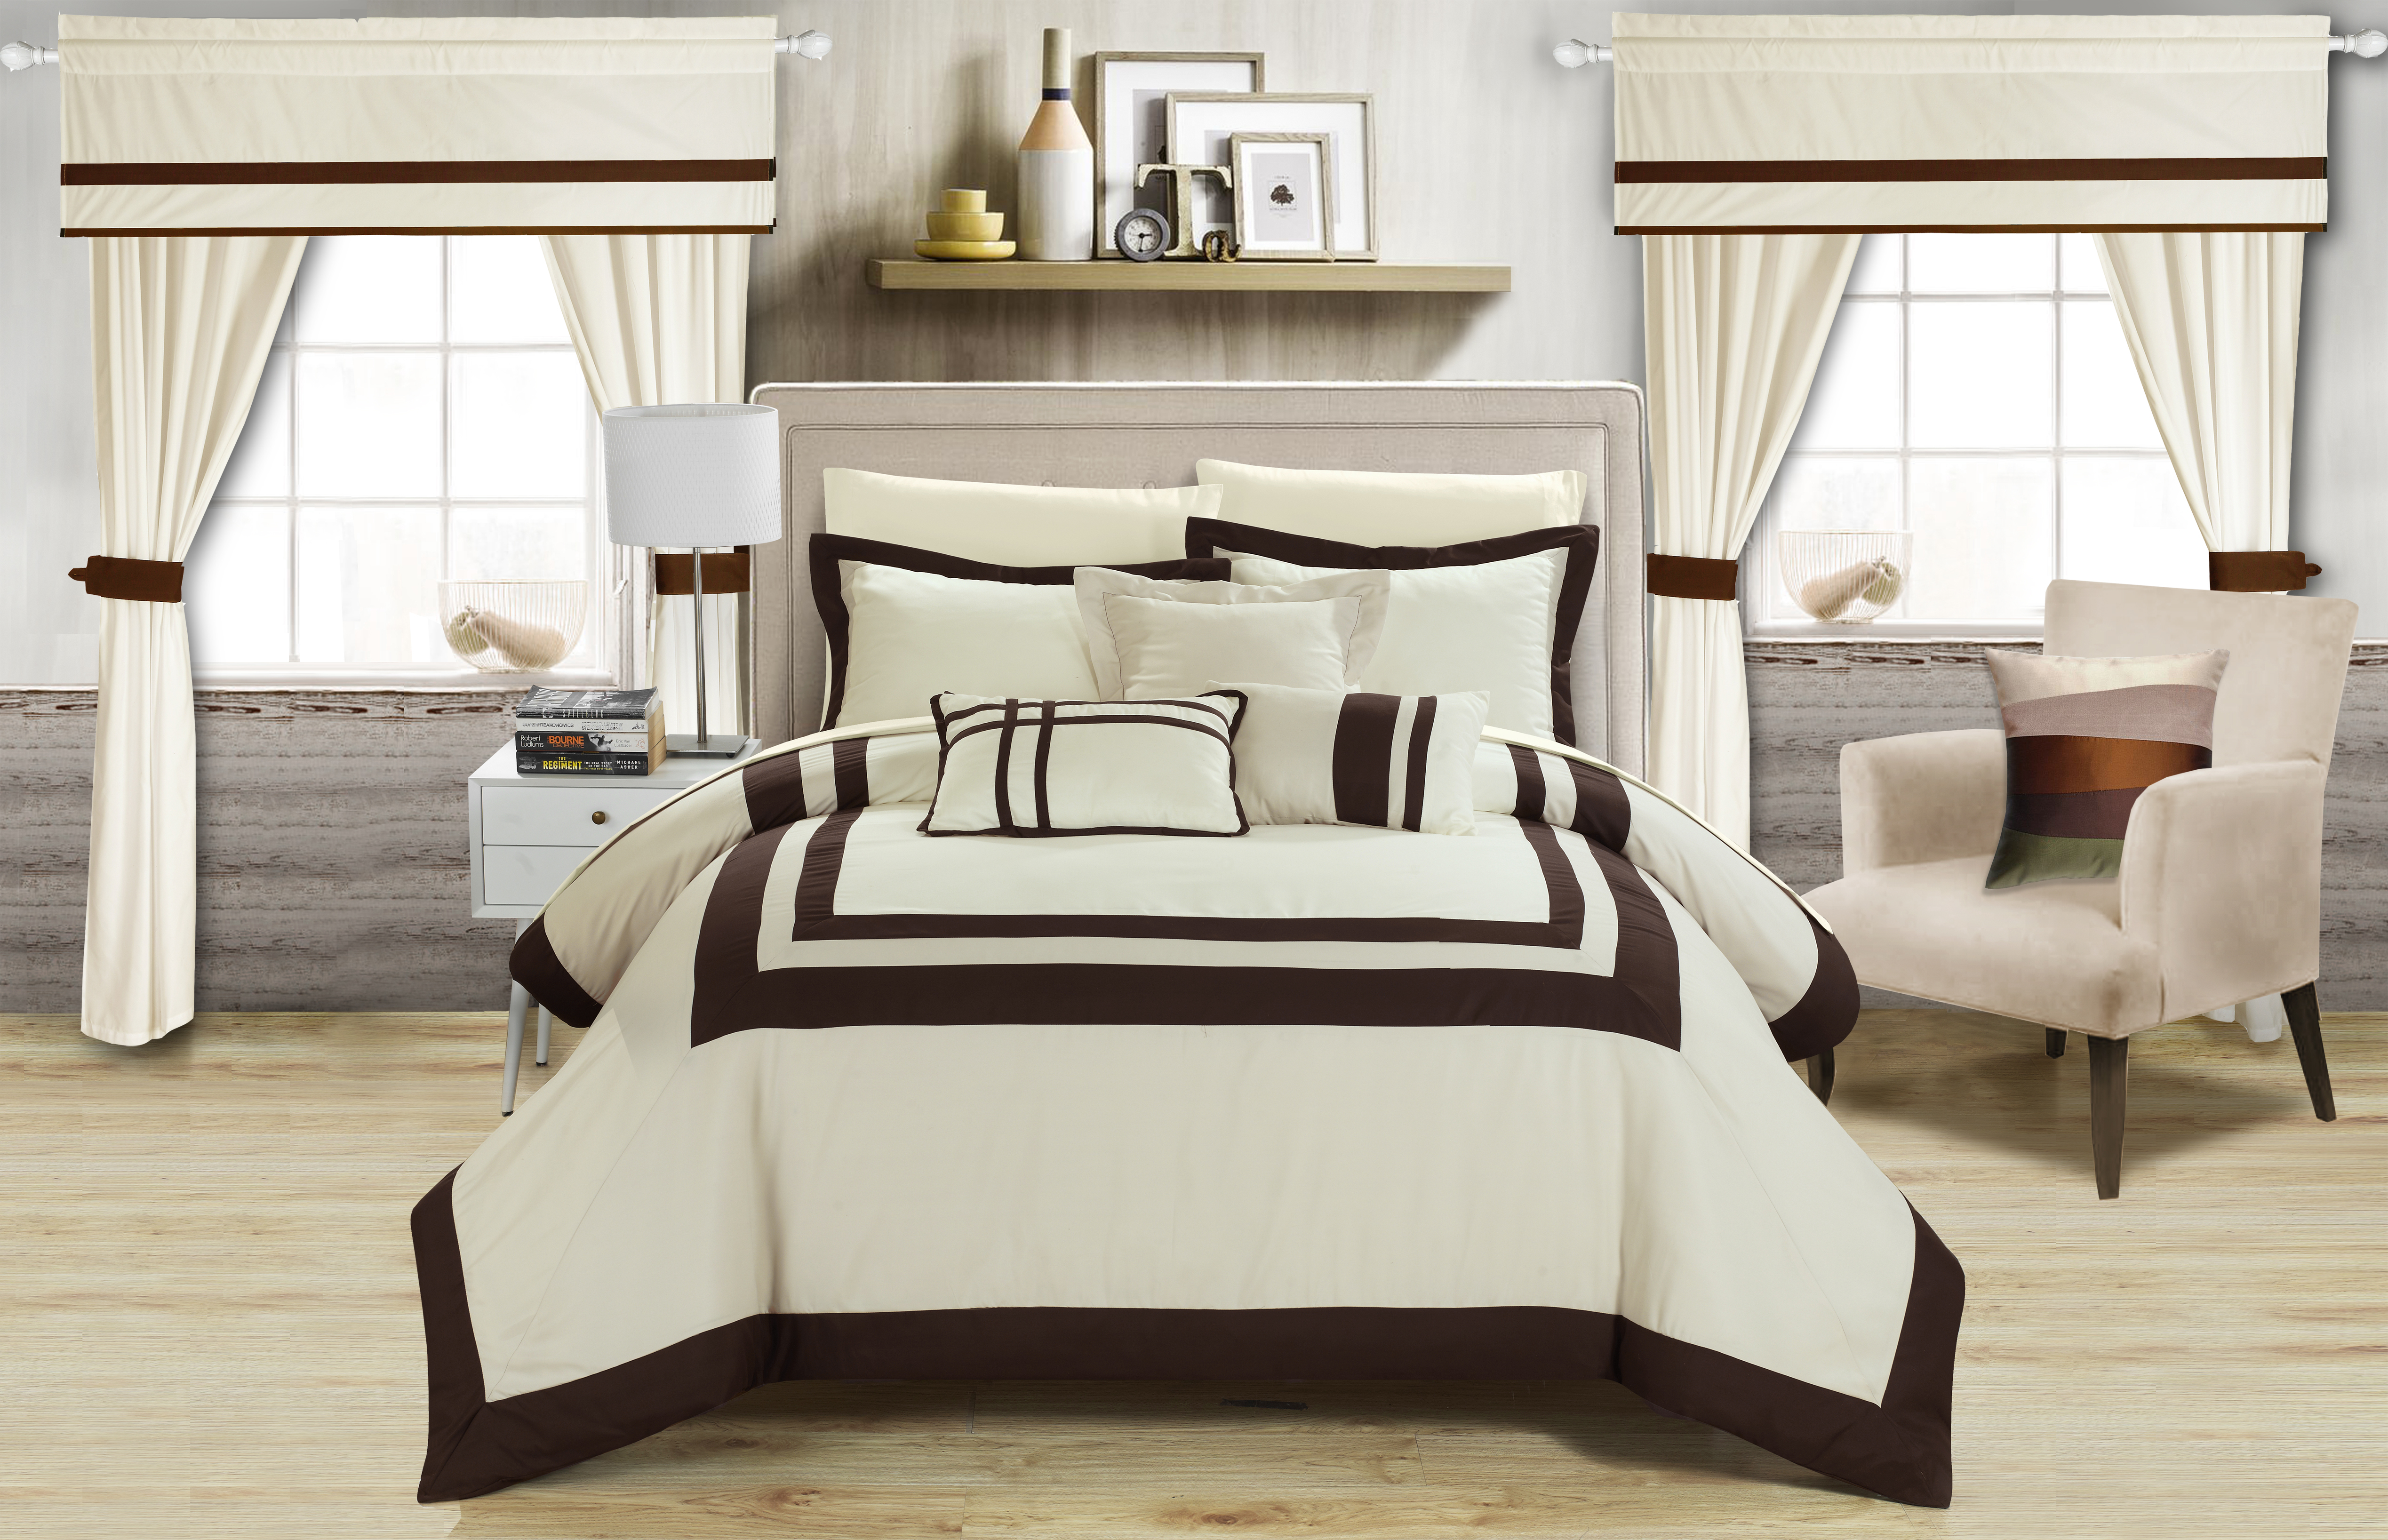 Chic Home 20 Piece Bertran Pieced Color Blocked Complete Master Bedroom Ensemble Includes Comforter Set - King, Beige